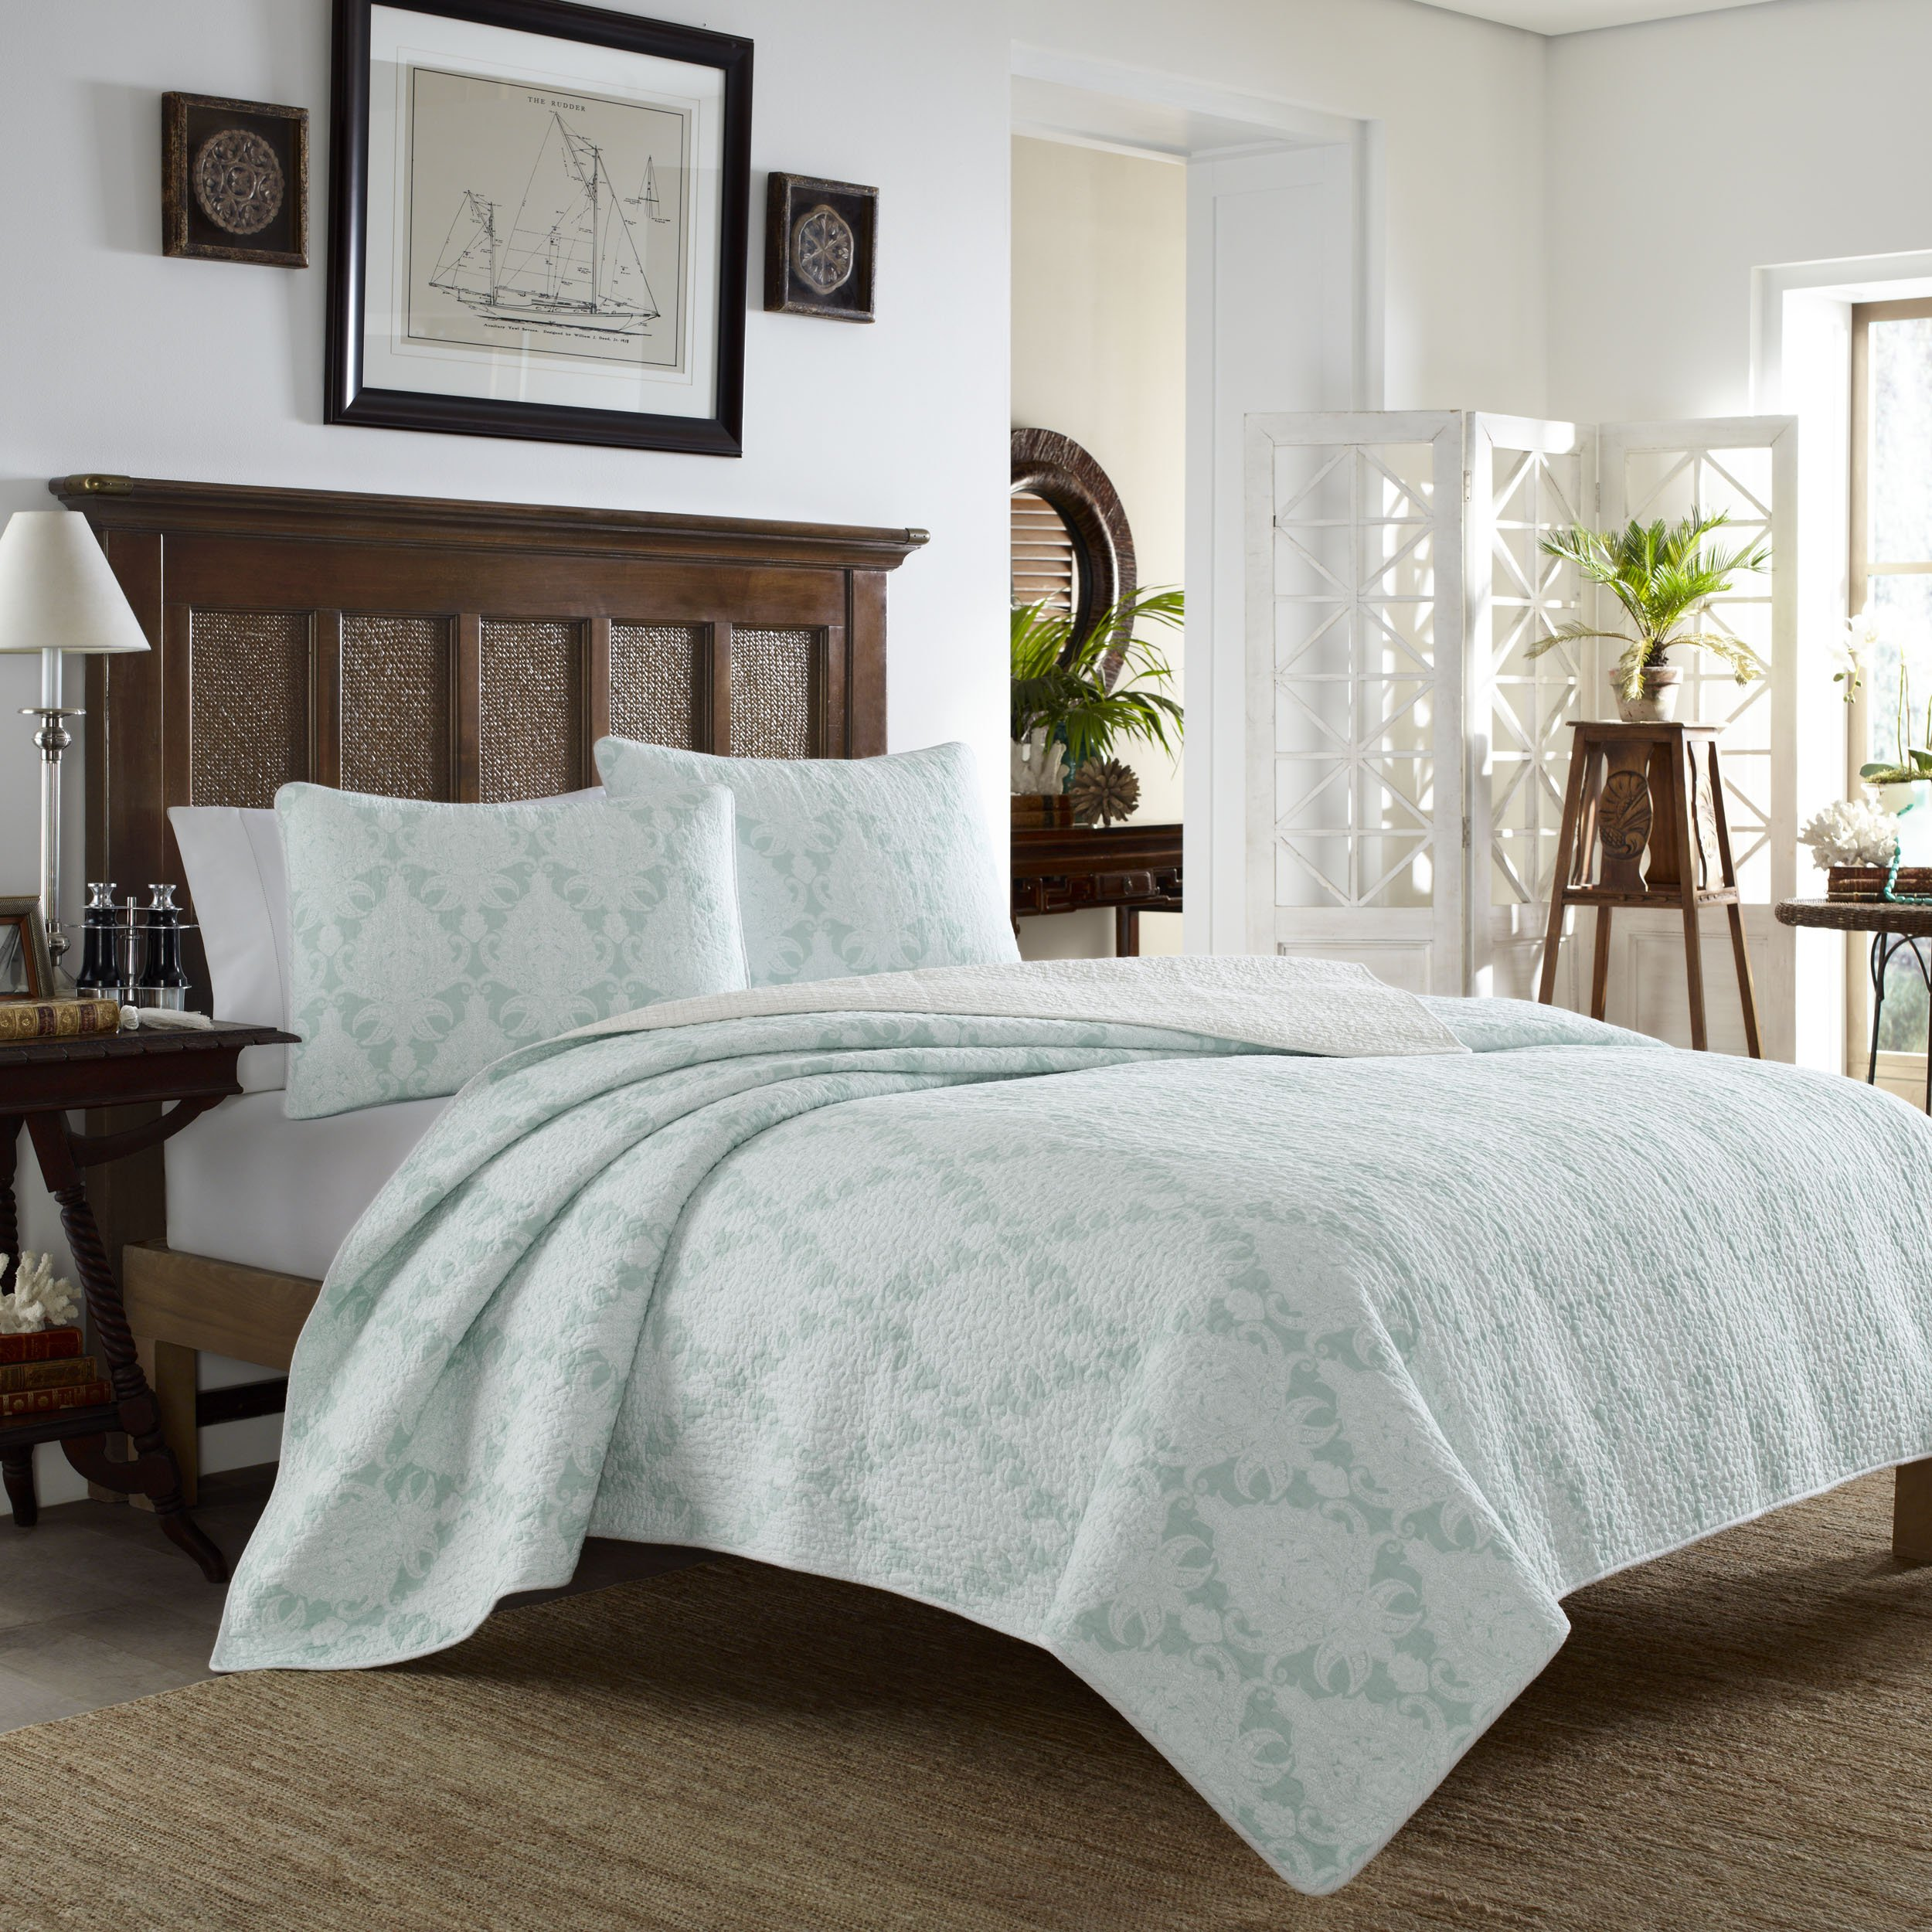 Tommy Bahama Quilt Set, King, Cape Plumbago by Tommy Bahama (Image #1)